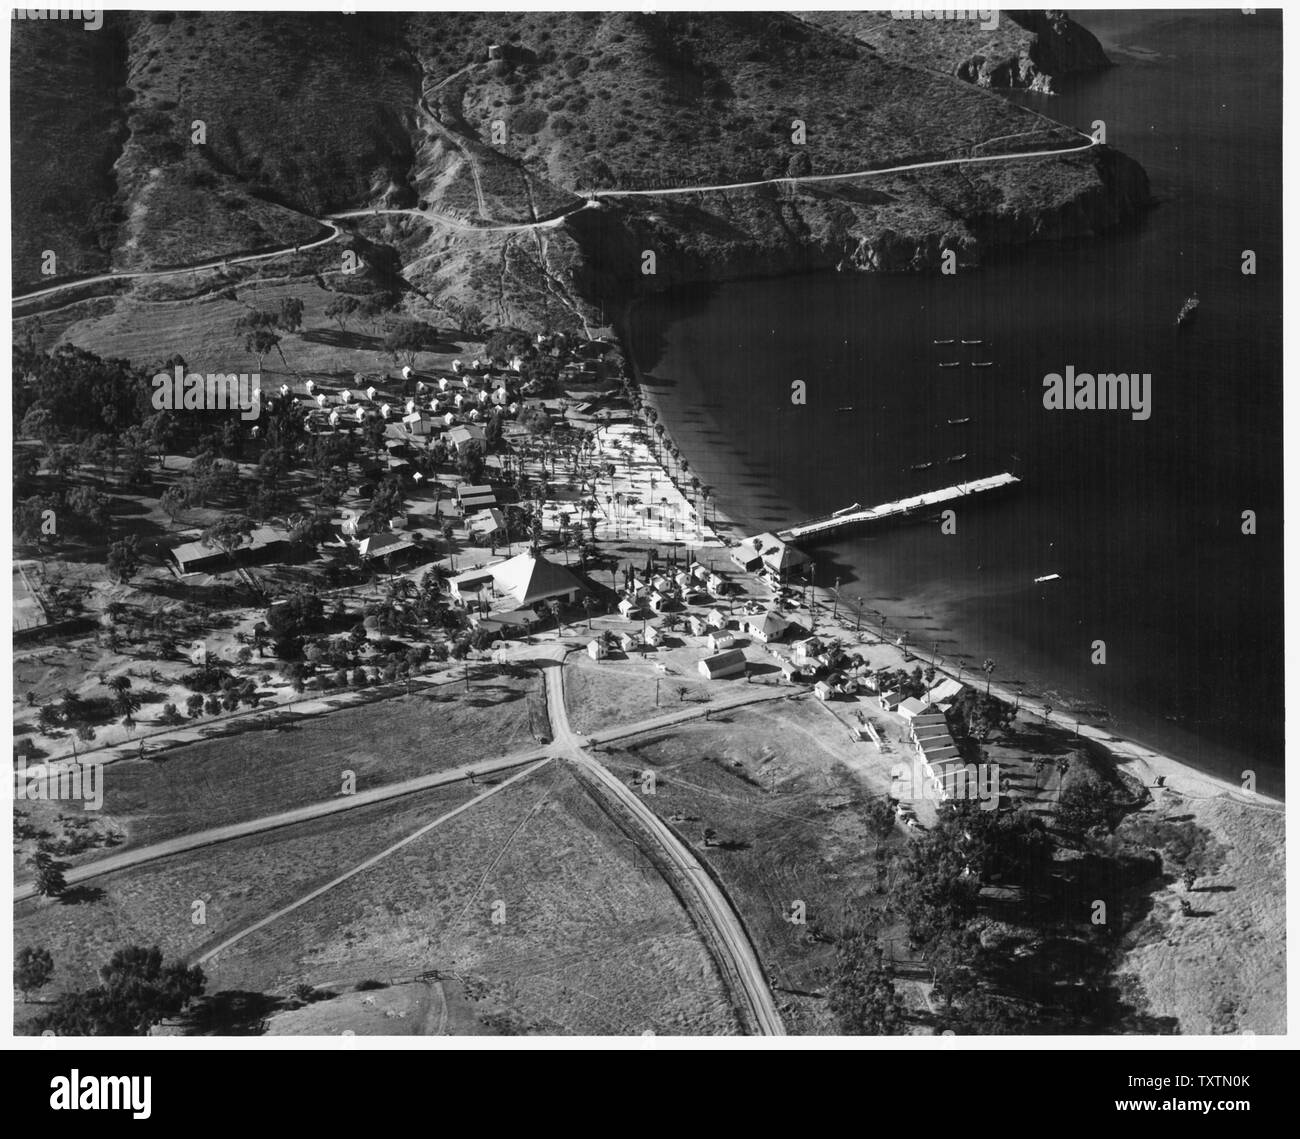 [Aerial view of structures comprising Naval/Coast Guard base at the Isthmus of Catalina Island. Largest building with cupola in foreground is the former Catalina Island Yacht Club.] - Stock Image